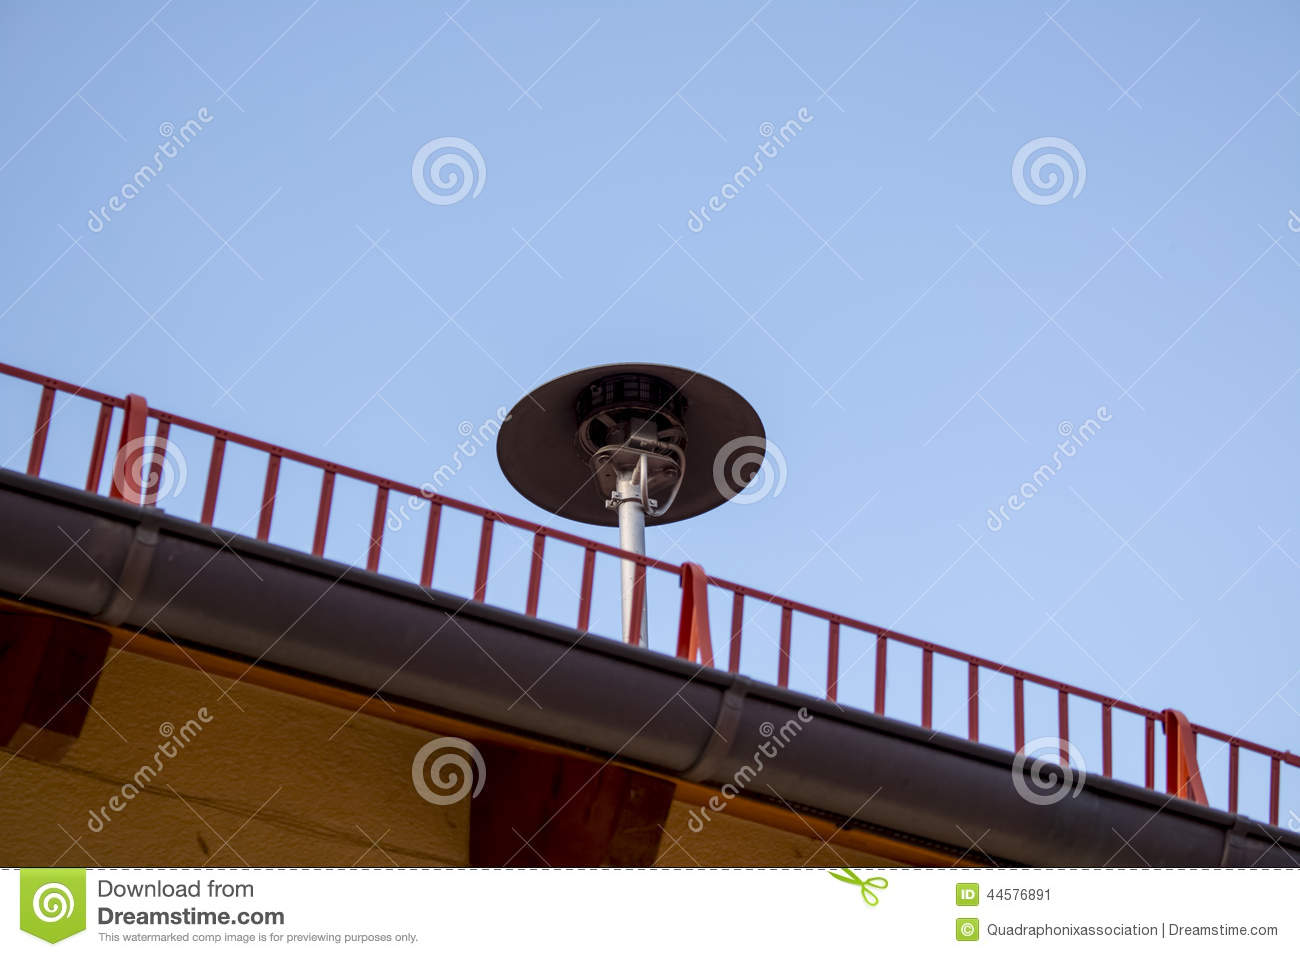 Air Raid Siren On Roof Stock Photo.